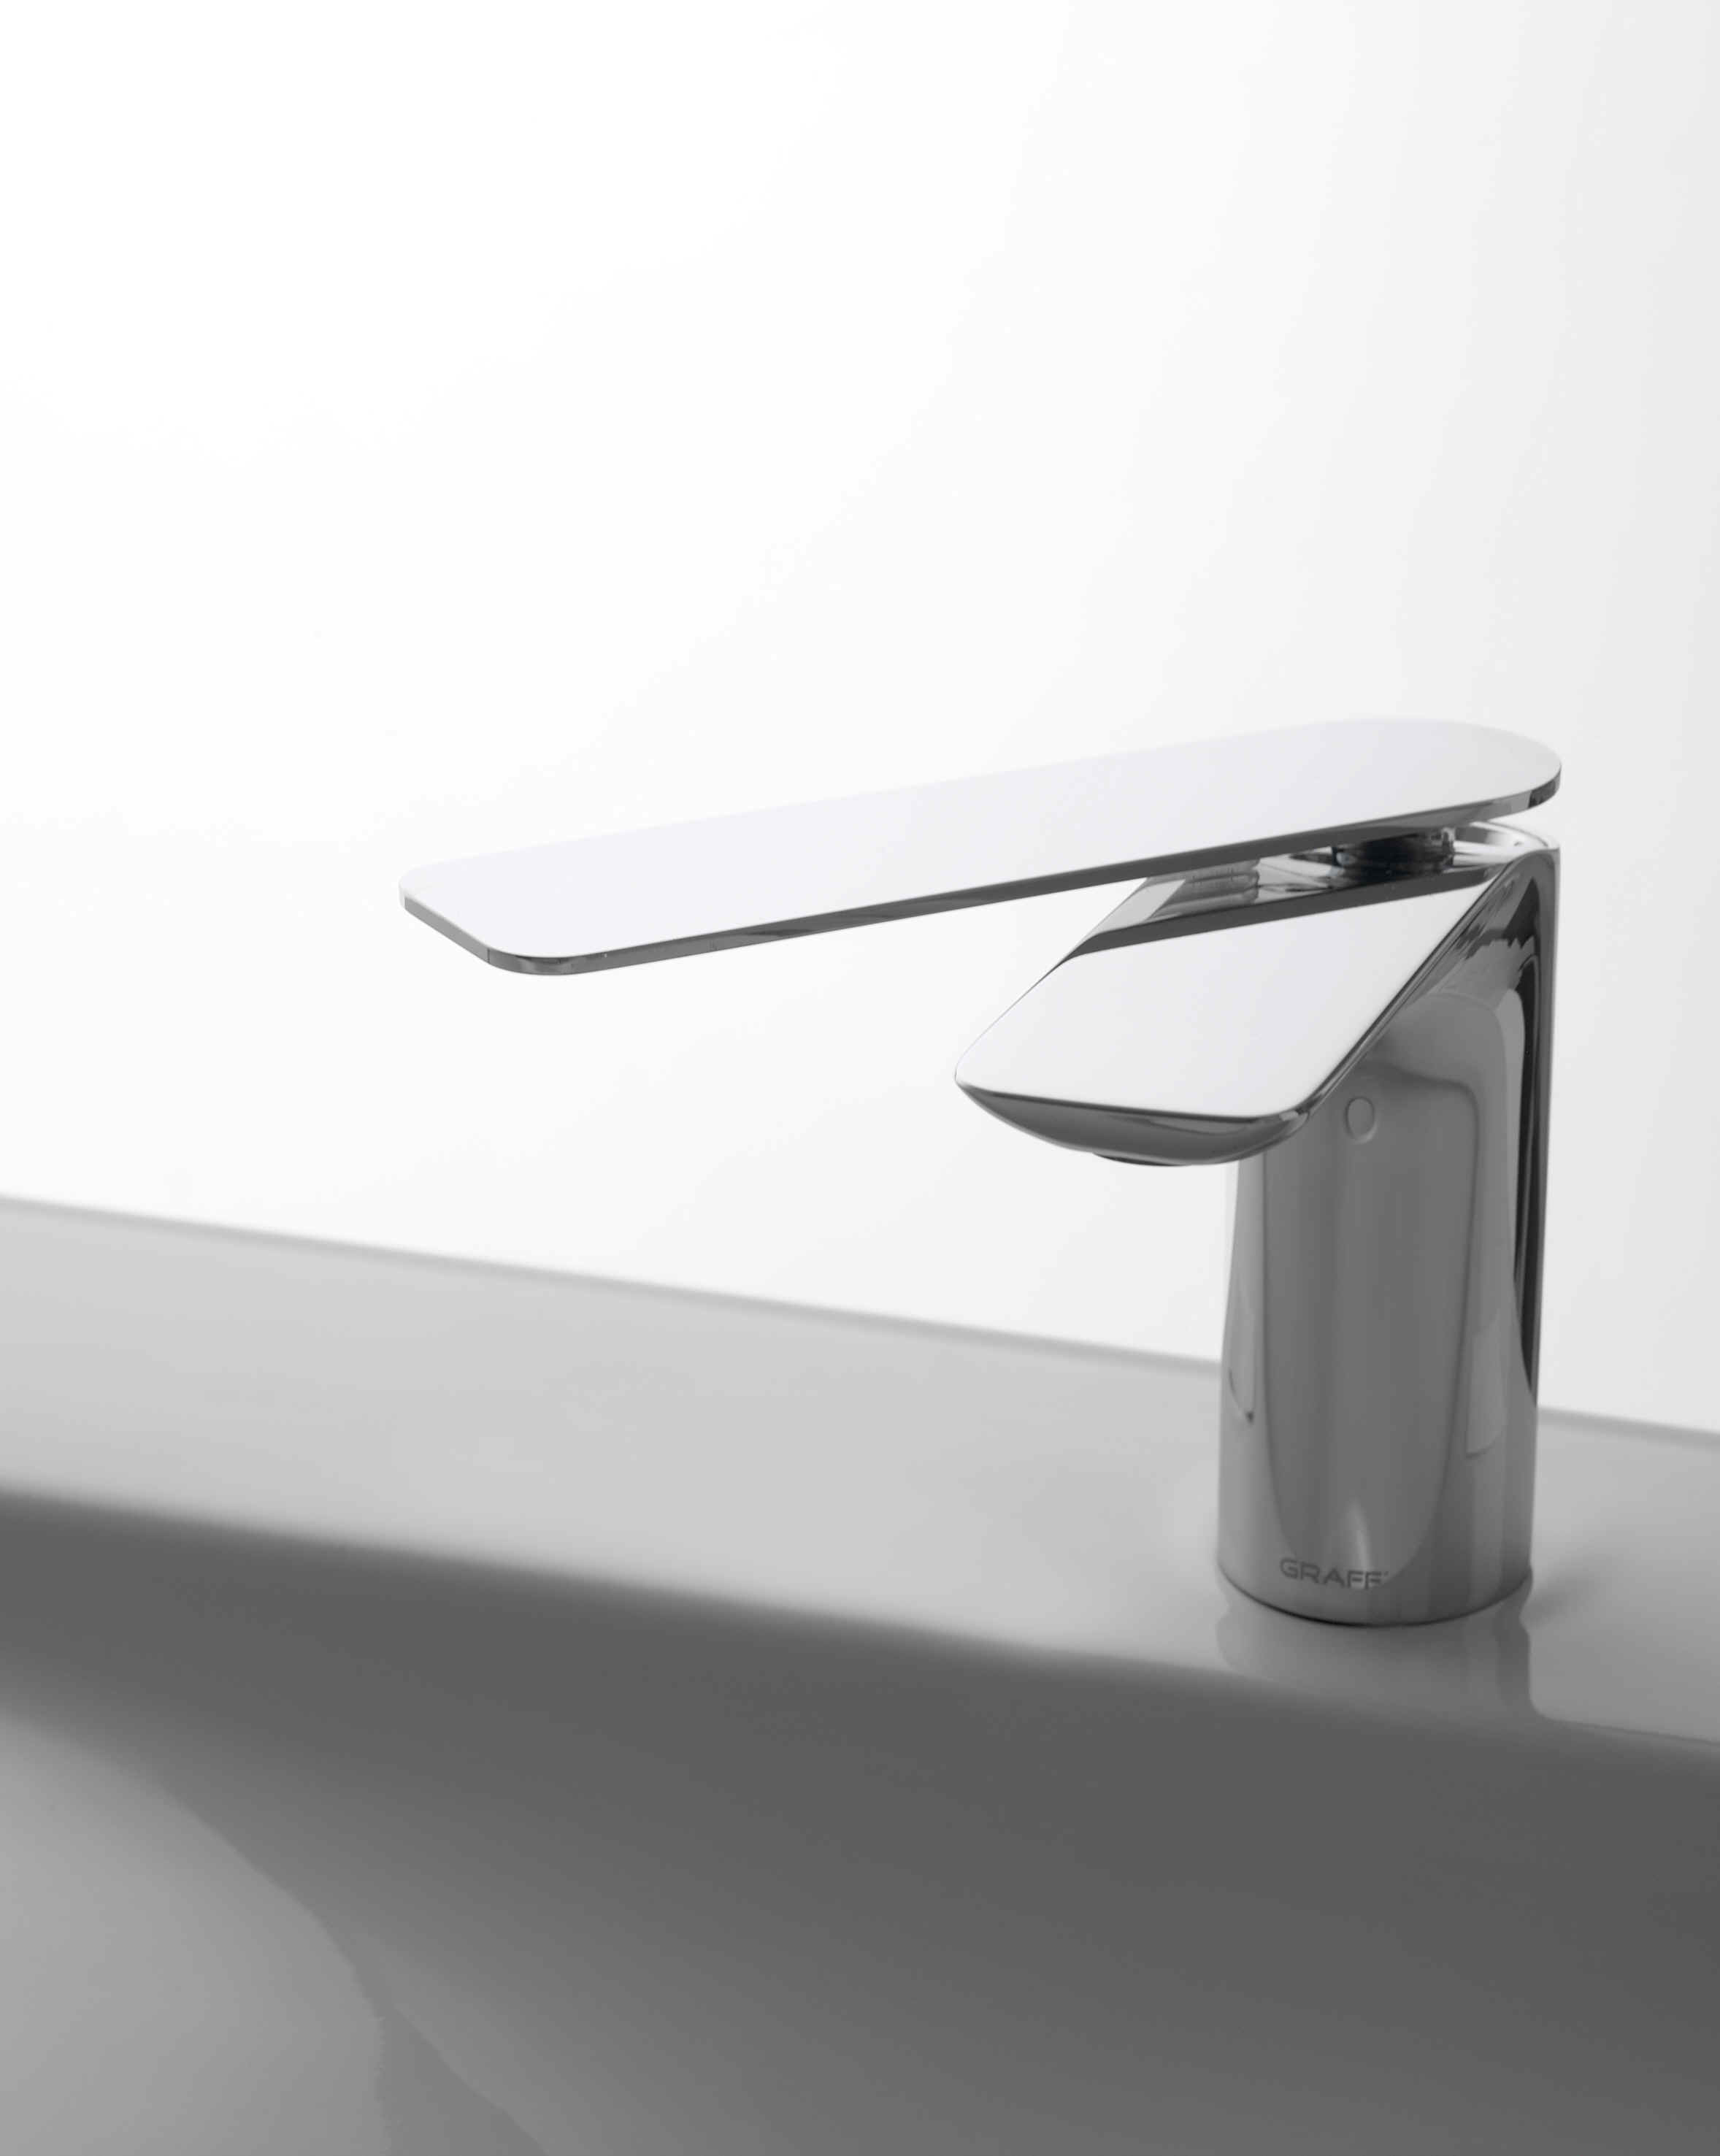 graff vanities elegant ideas products ikea austinmartin with us tile inspirations also pictures vanity and faucet bathroom gallery images corner small faucets exelent merola collection